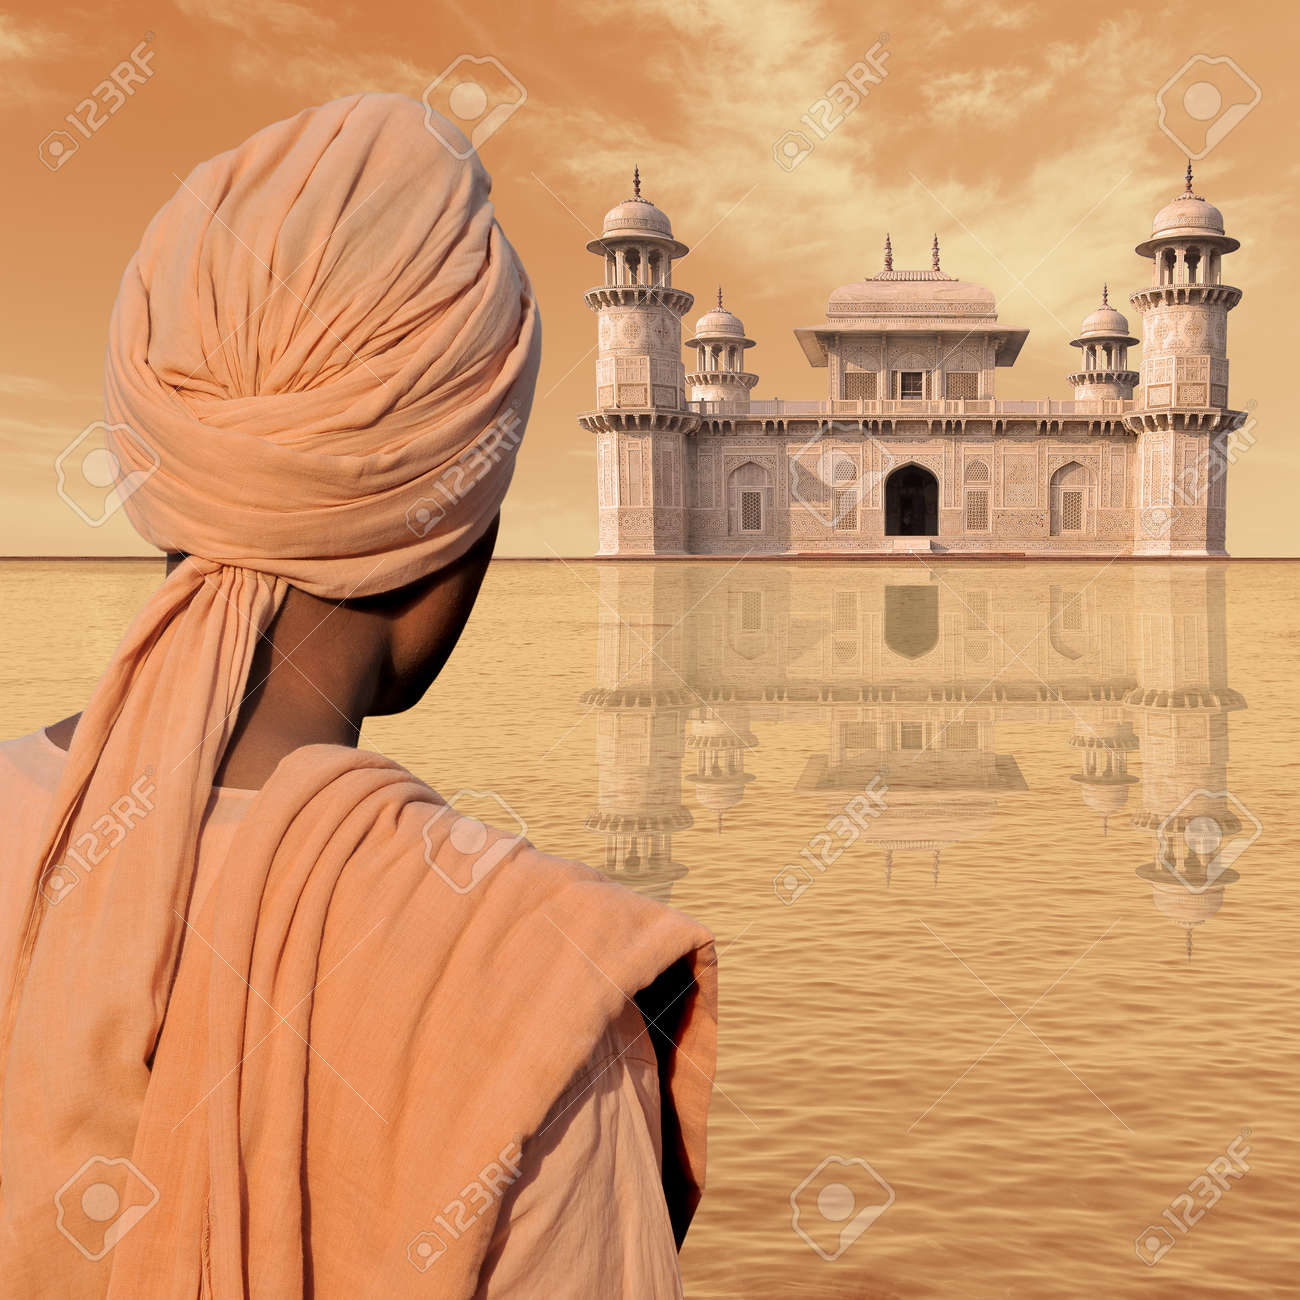 Man with turban near a palace in India. Stock Photo - 10685905